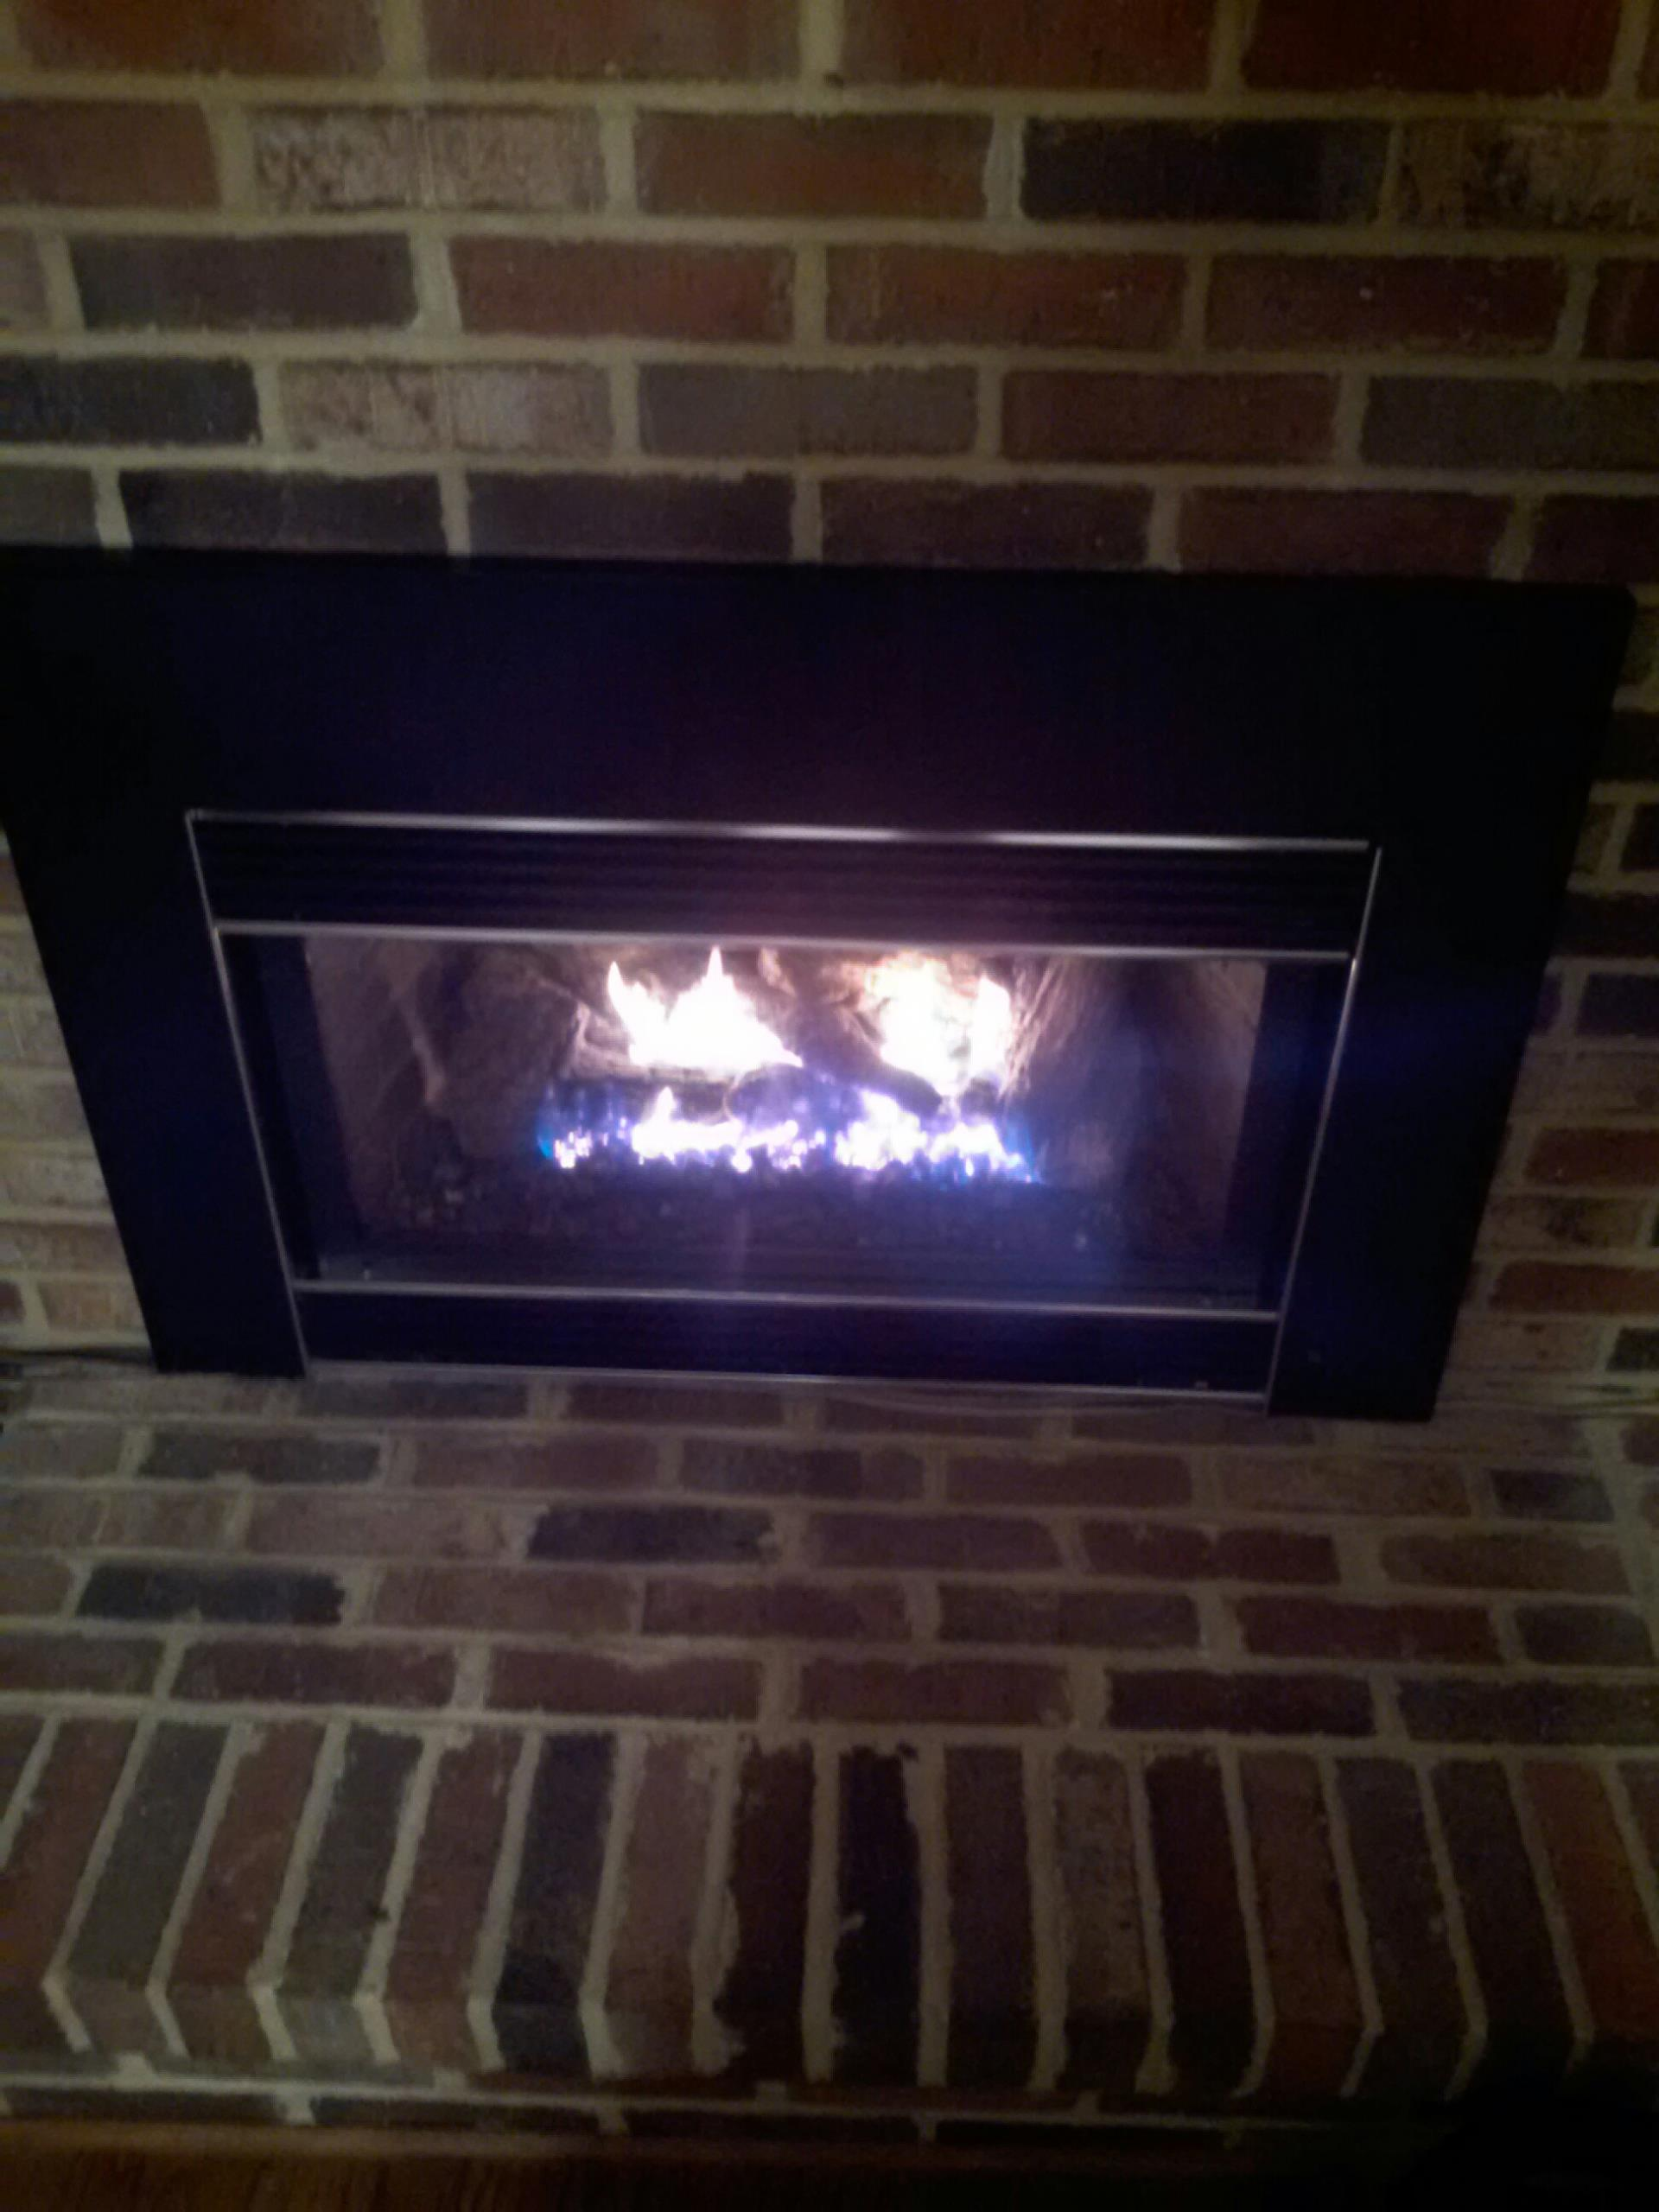 Gambrills, MD - Gas fireplace insert & gas logs installation repair service call in Gambrills Maryland.